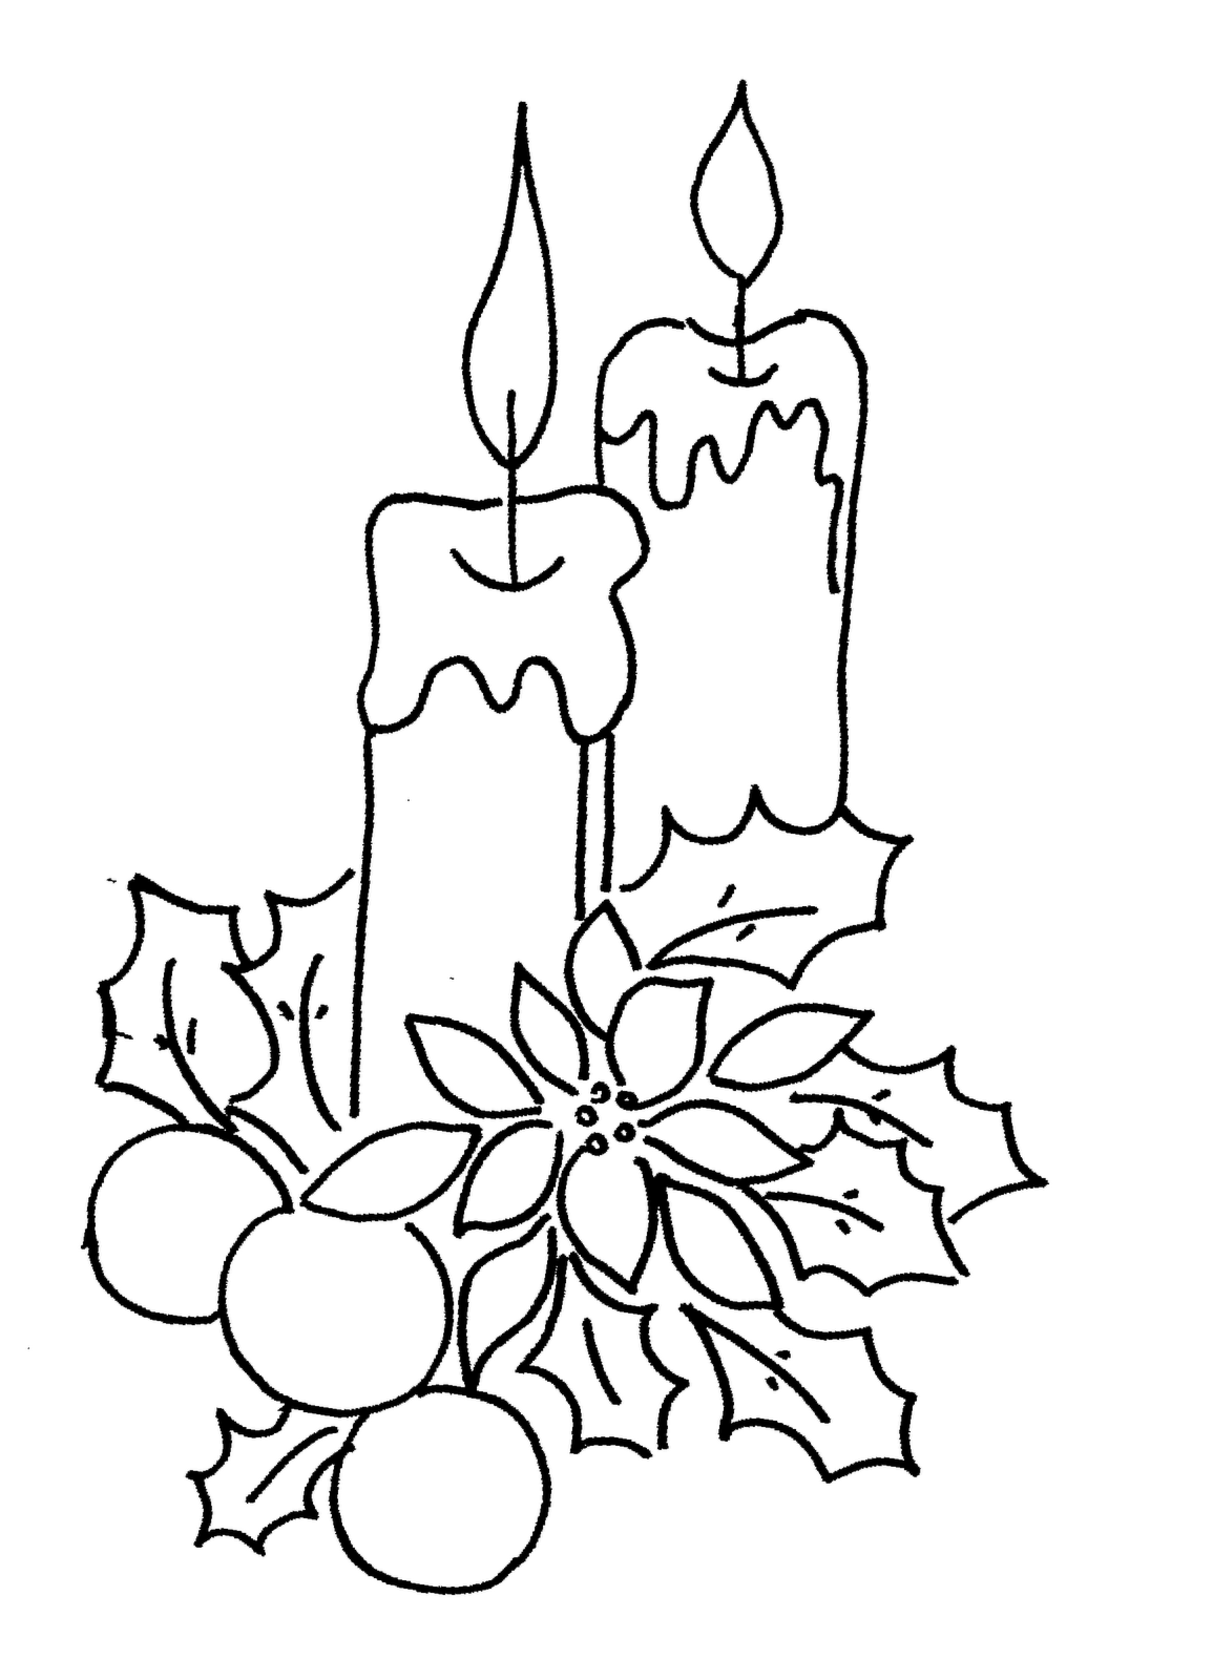 Printable Christmas Candles Coloring Pages With Pin By Eli Solano On BORDADOD Pinterest